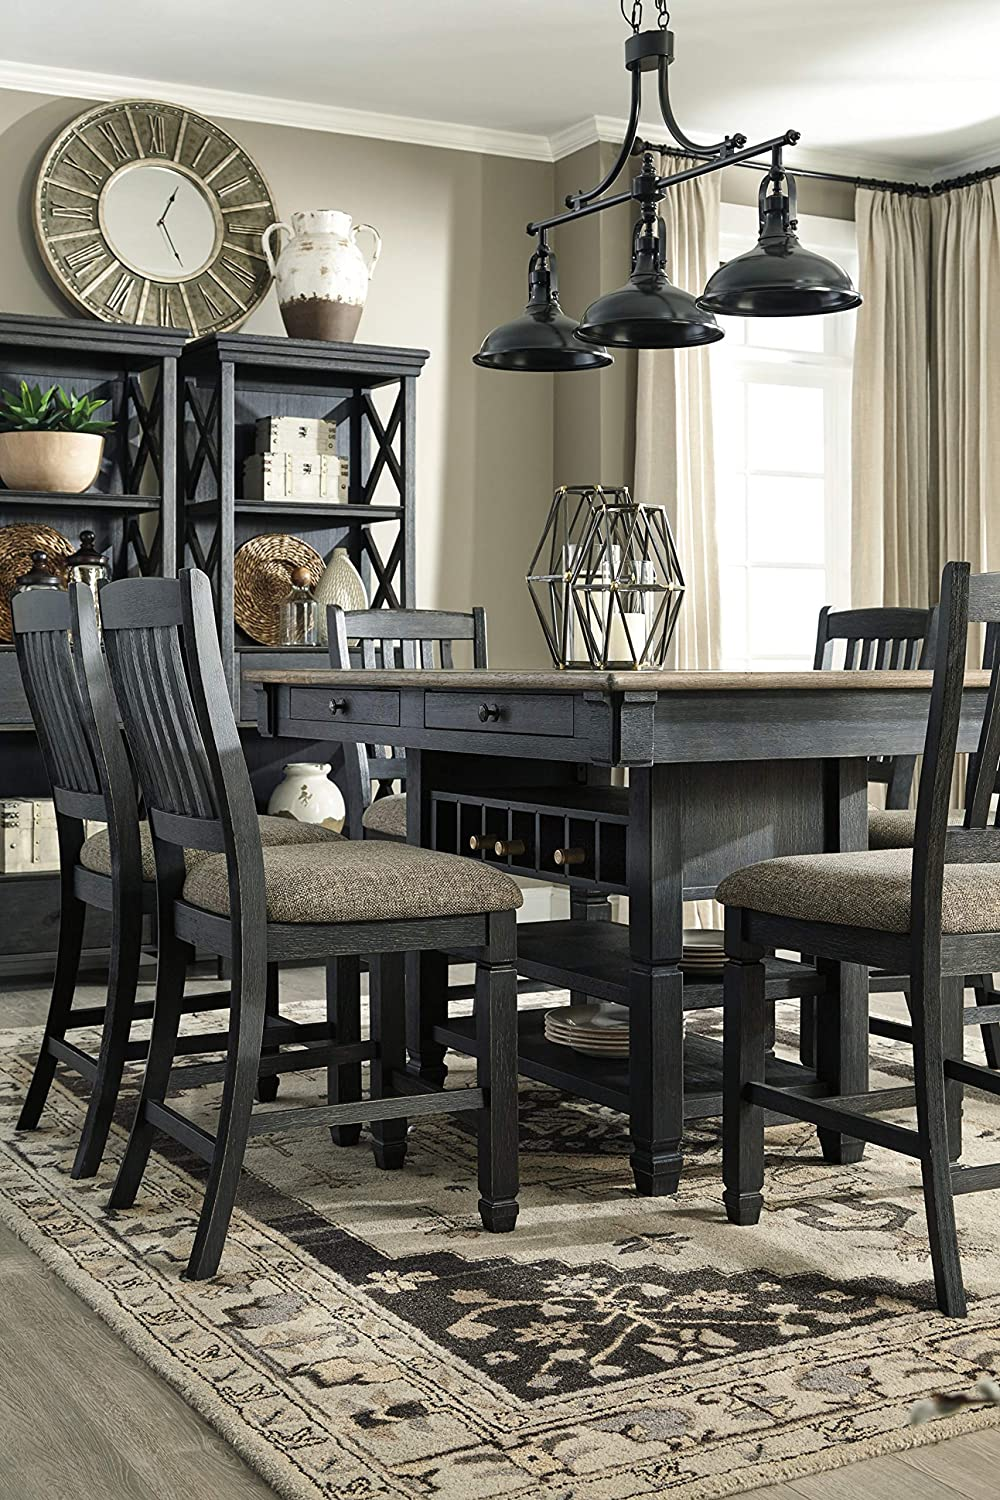 black-farmhouse-dining-table-with-built-in-storage-counter-height-with-open-shelves-built-in-wine-rack-drawers-wood-tabletop